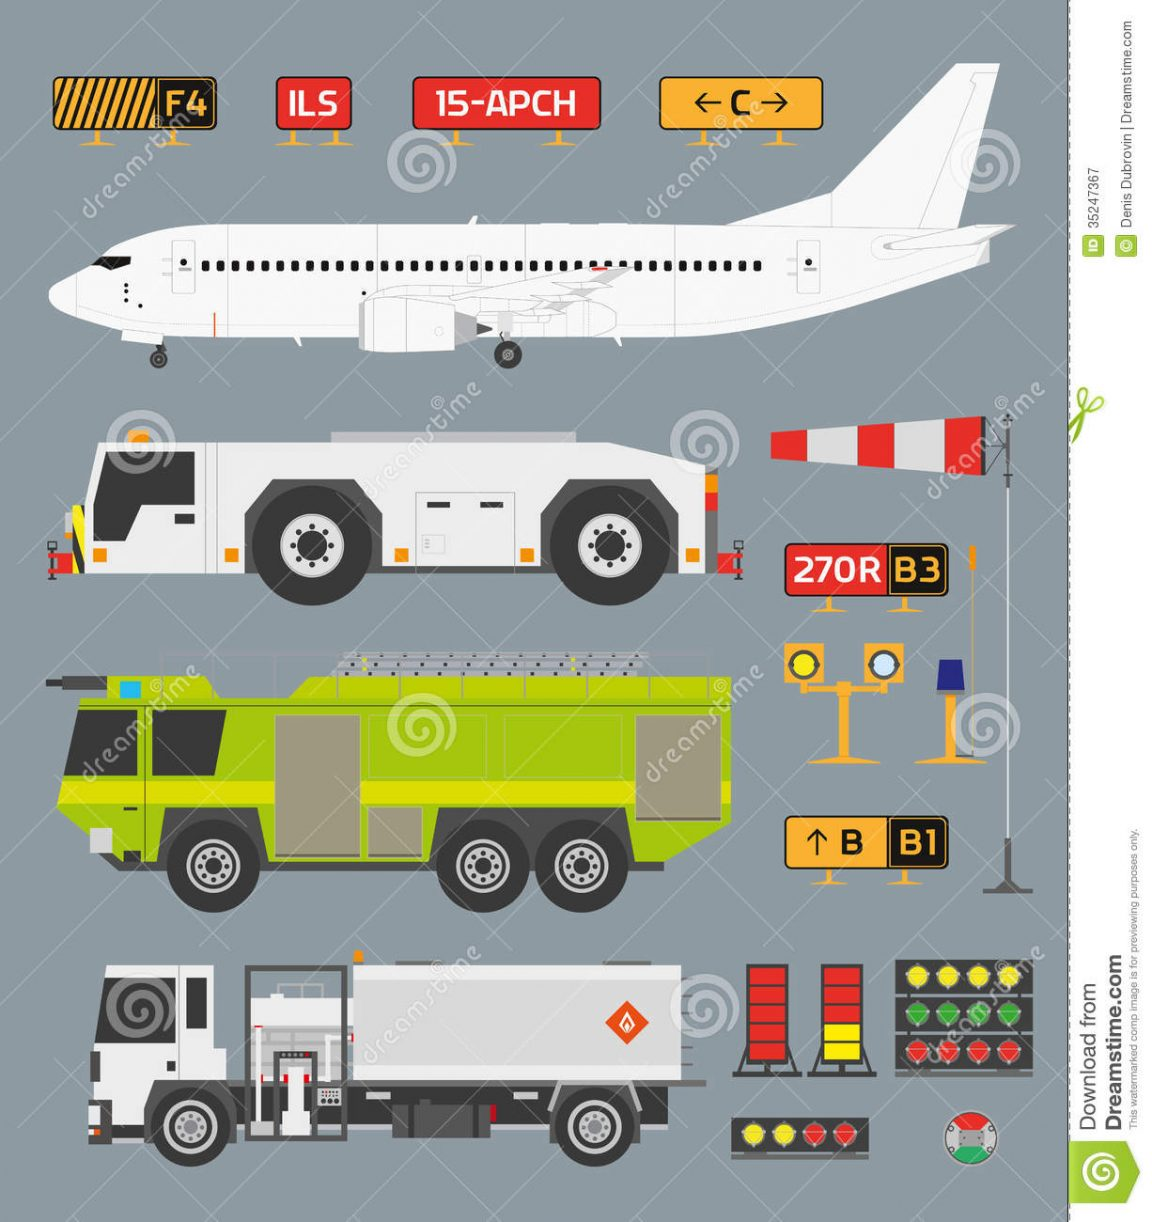 Tow truckiness plan template. Cafe clipart airport